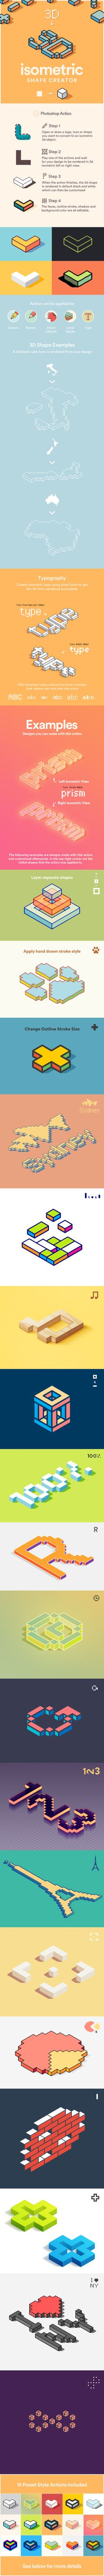 3D Isometric Shape Creator #3d shape #action #creator • Available here → http://graphicriver.net/item/3d-isometric-shape-creator/15606340?ref=pxcr